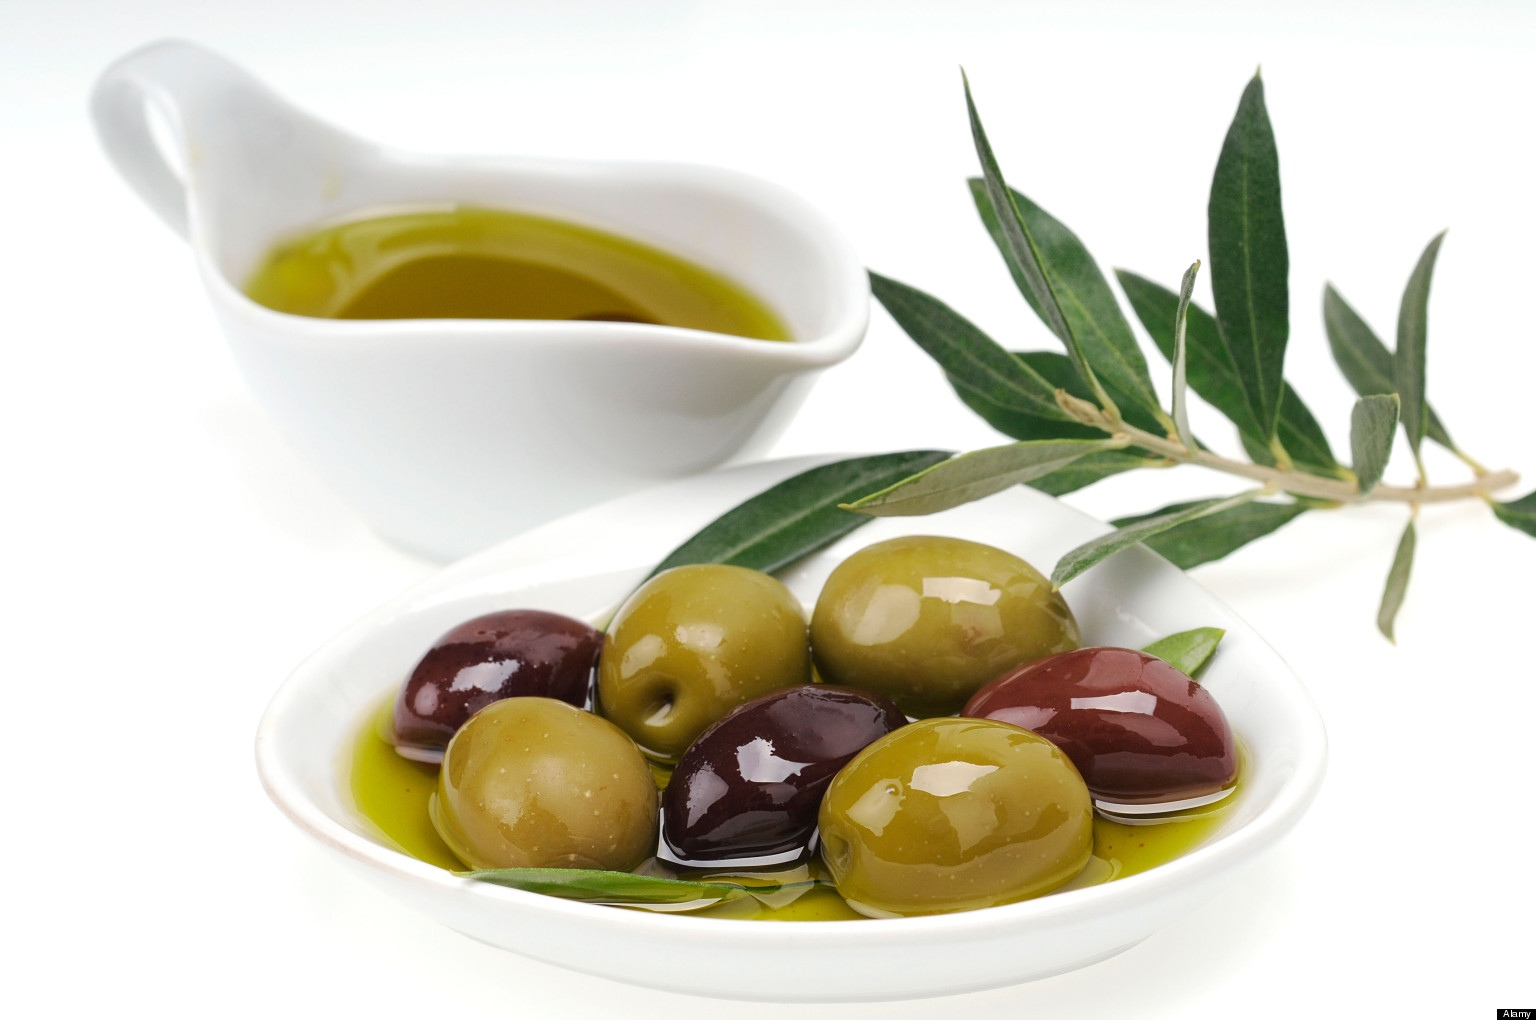 The Texas Olive Growers Association & Council elected first